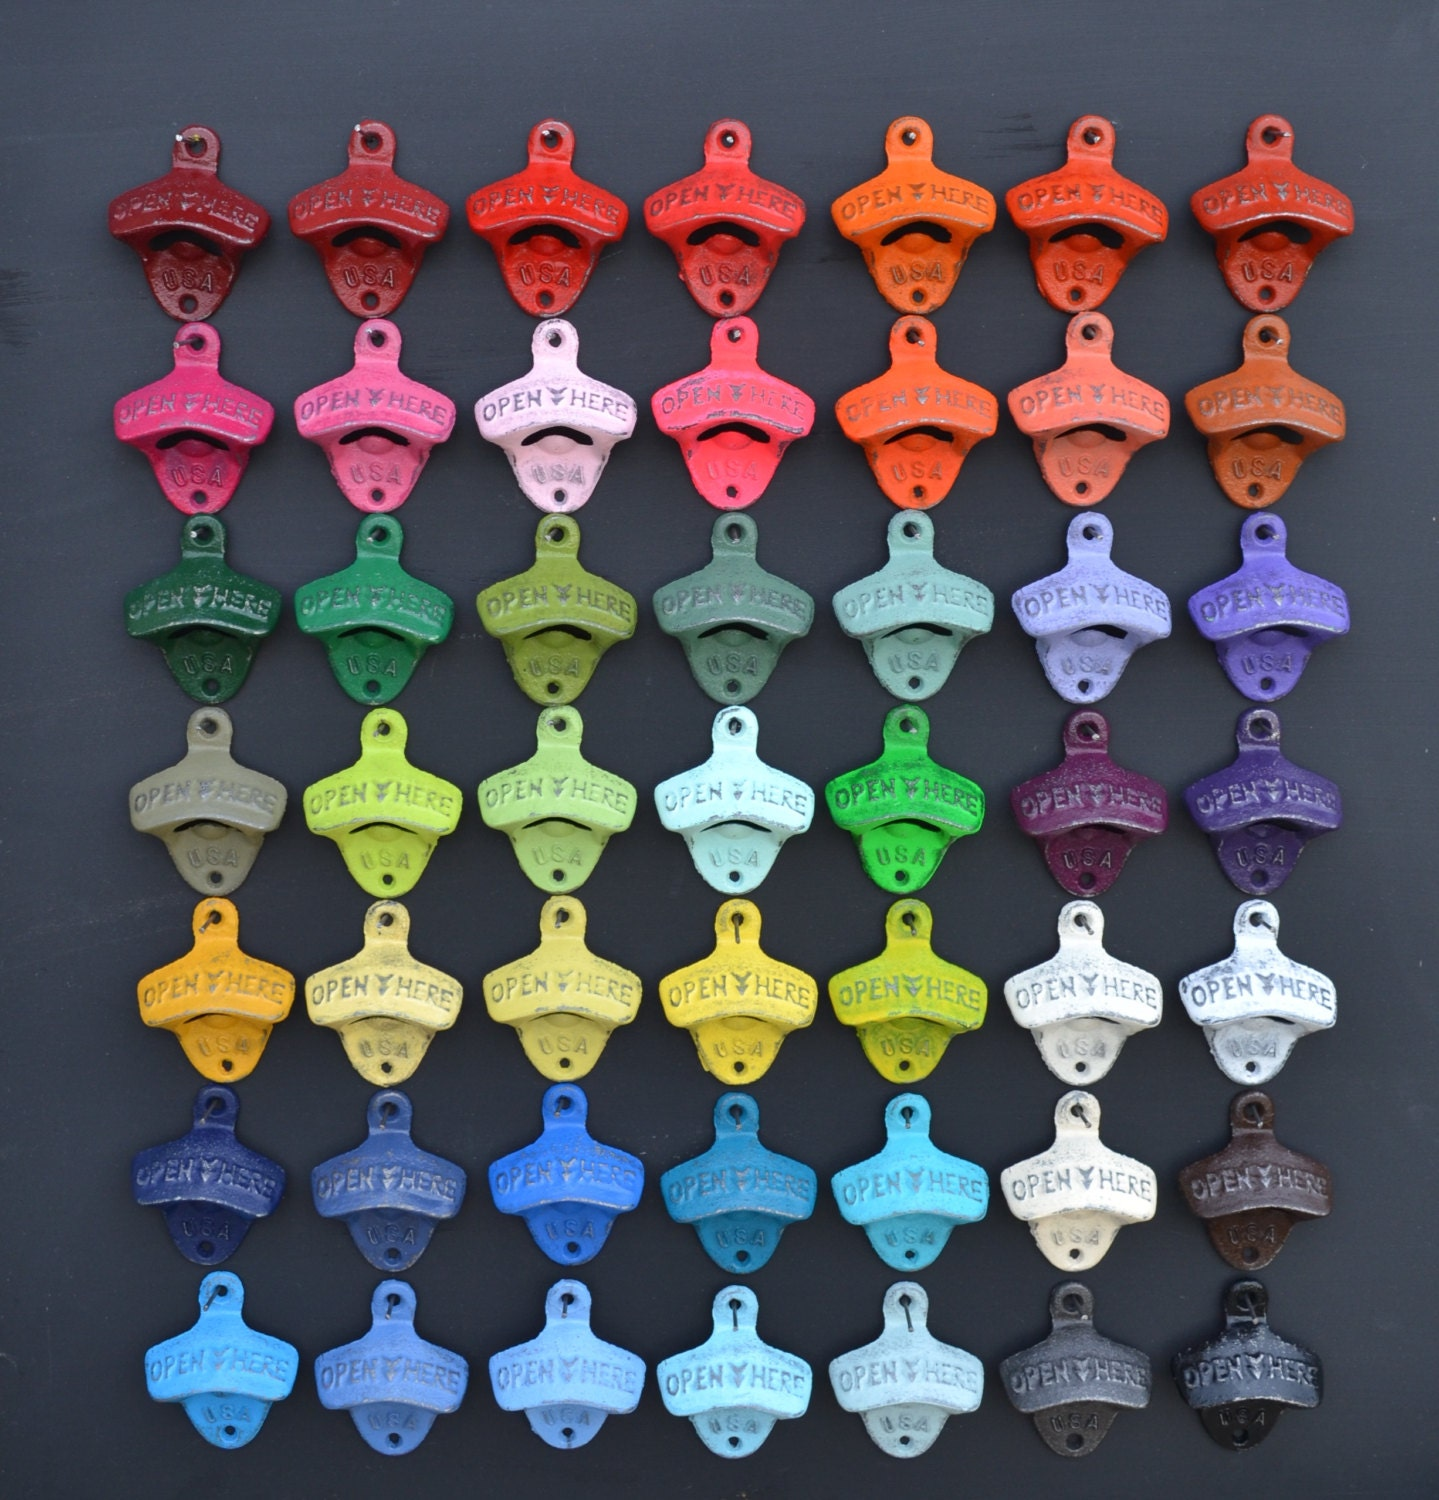 Wall Mounted Bottle Opener - Over 50 Colors - Cast Iron Opener Rustic Barware Beer Accessories Kitchen Decor Patio Decor Man Cave Decor